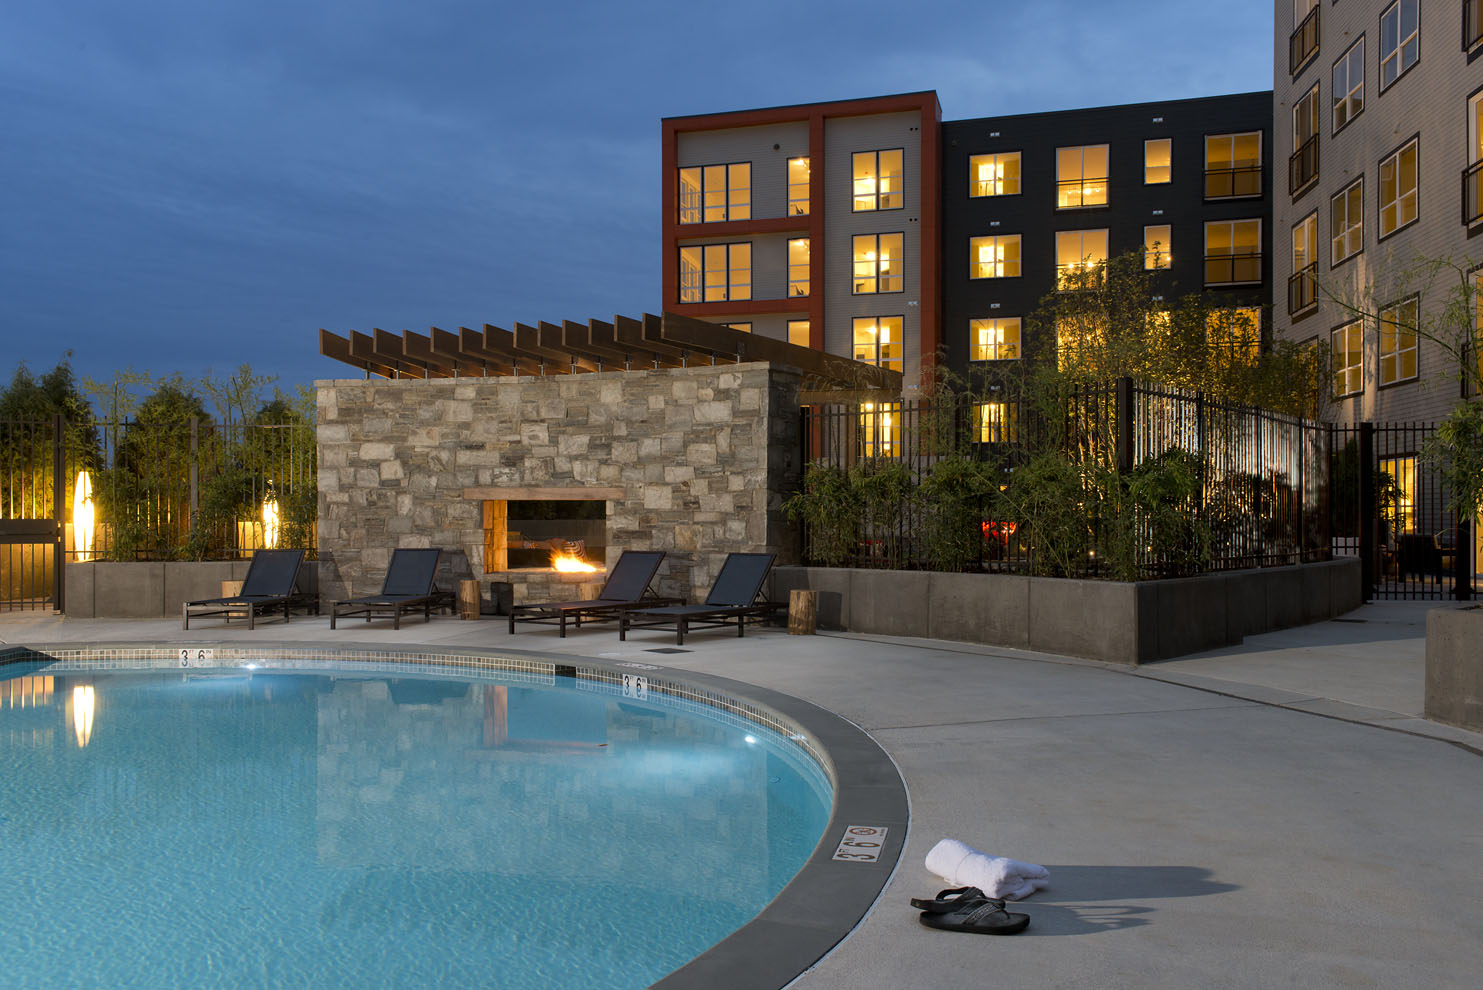 swimming pool, fire place and building at night